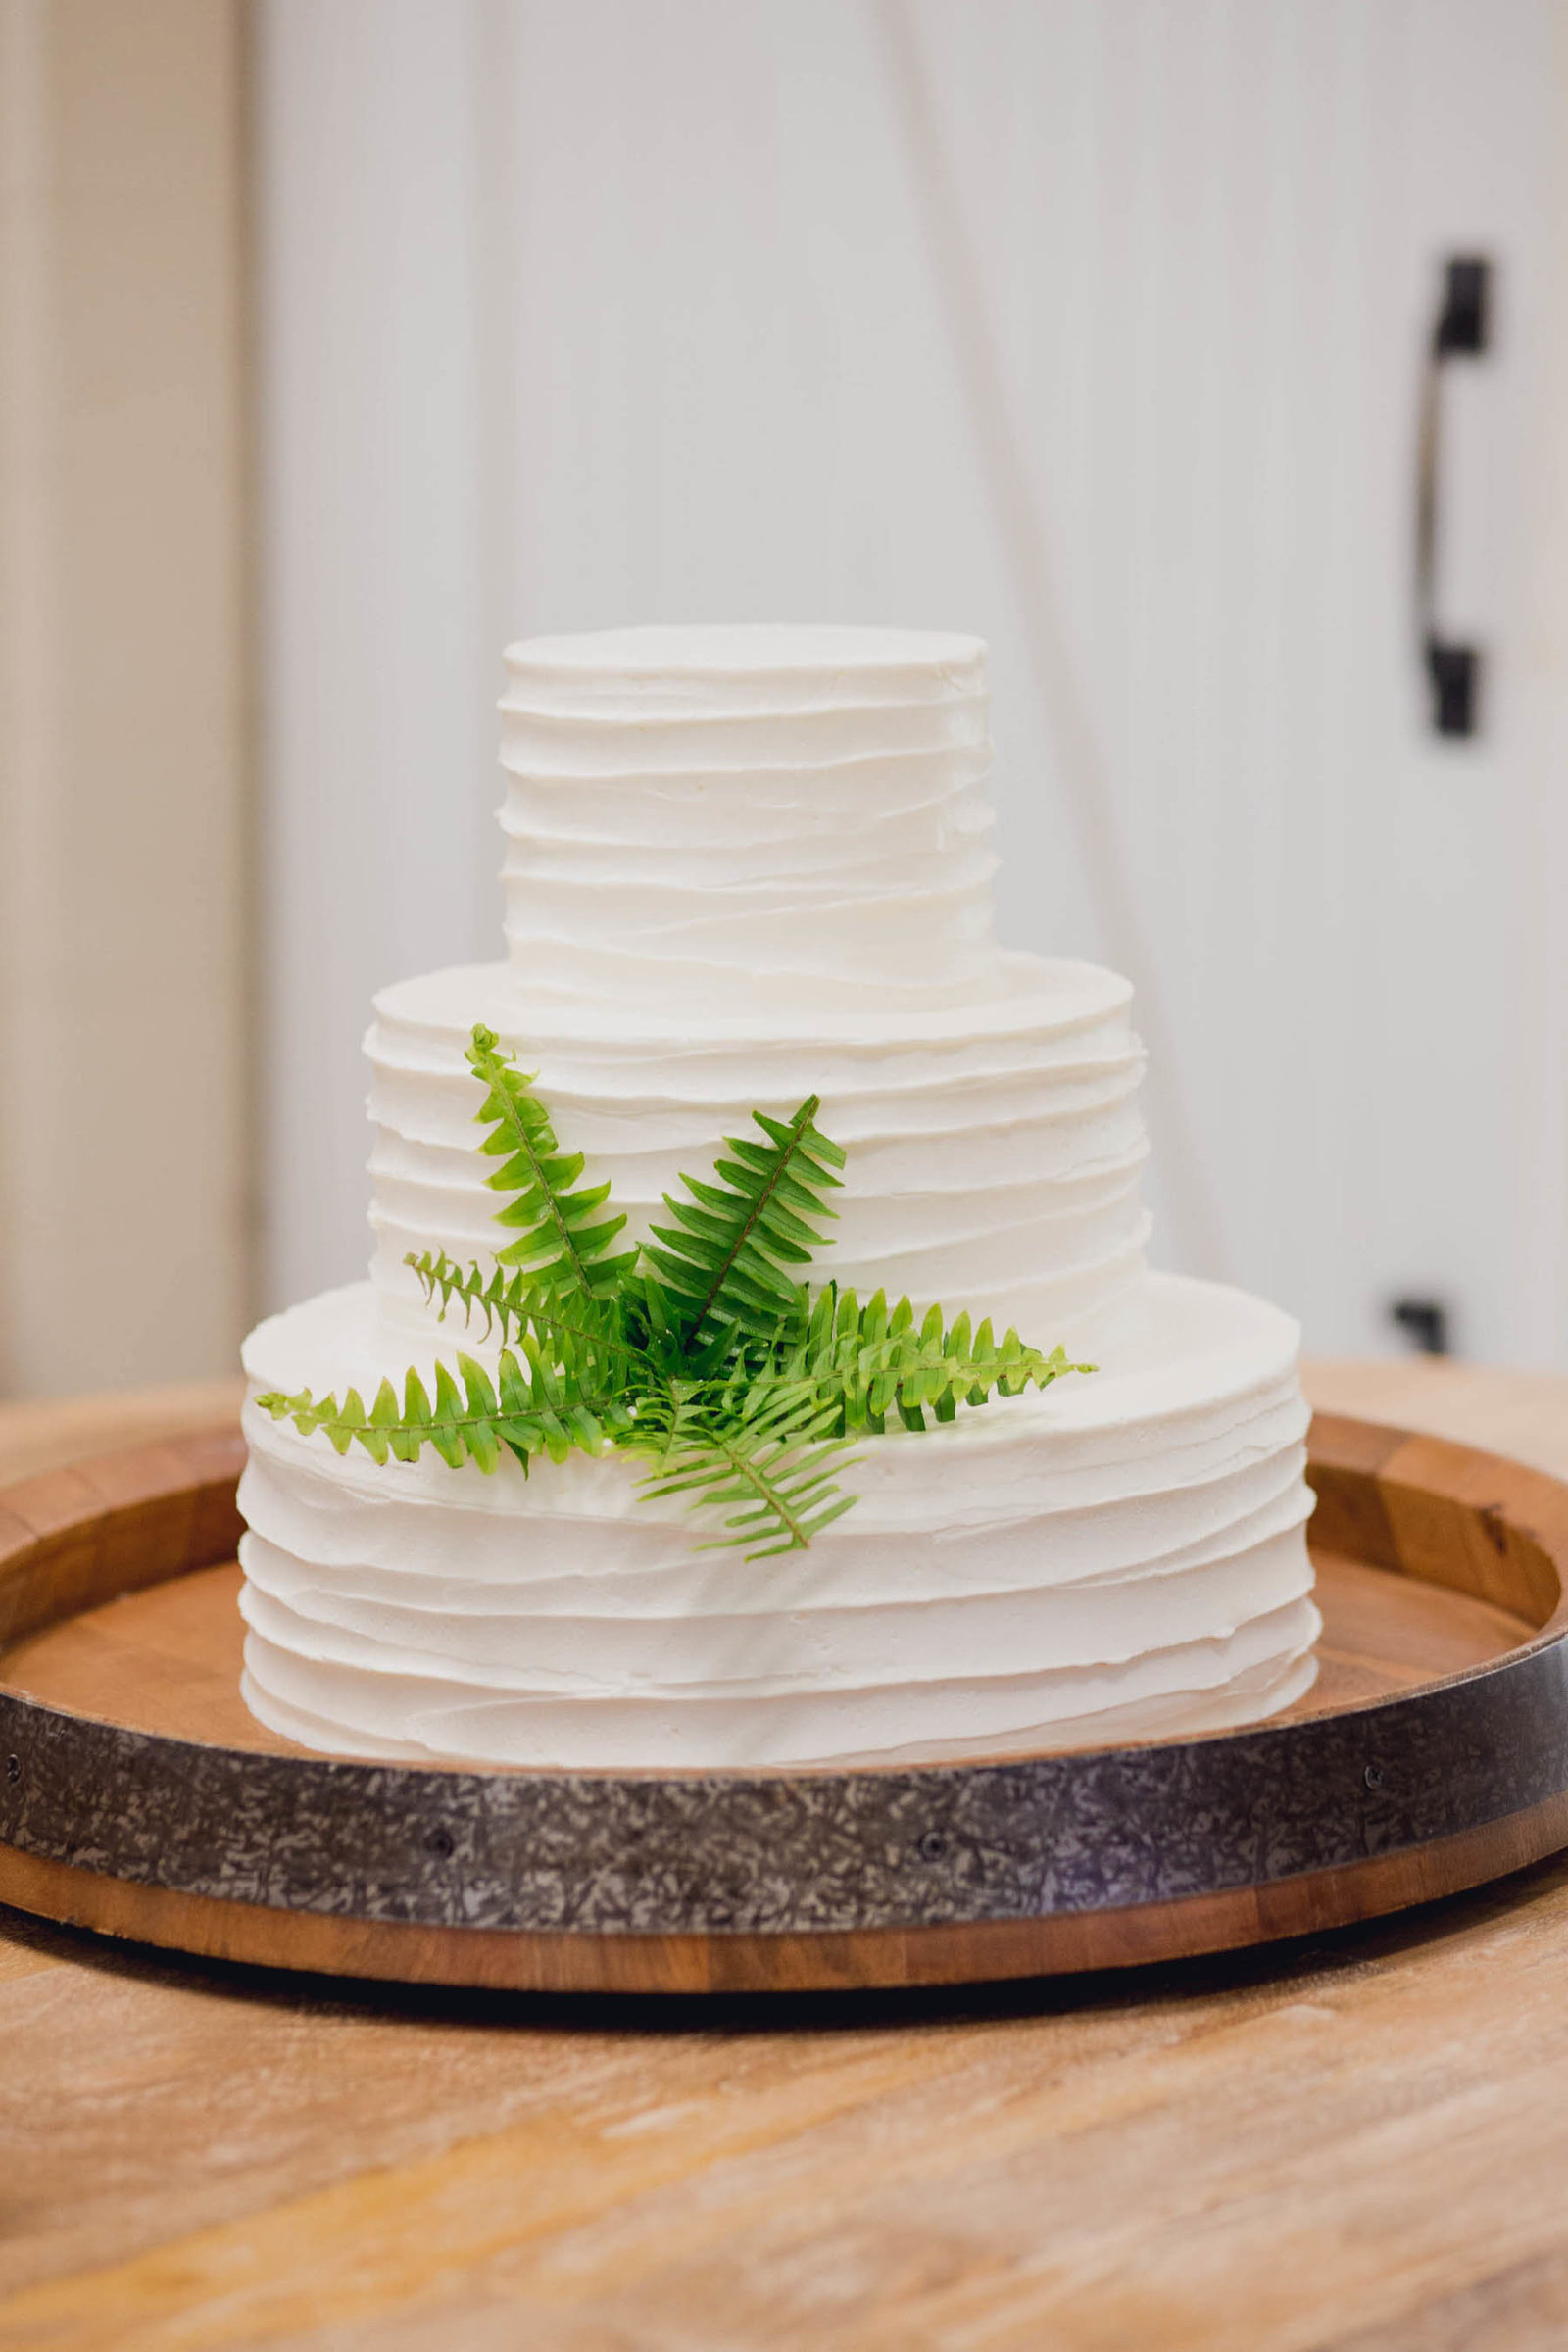 Simple white cake has fern as an accent, Old Wide Awake Plantation, Charleston, South Carolina